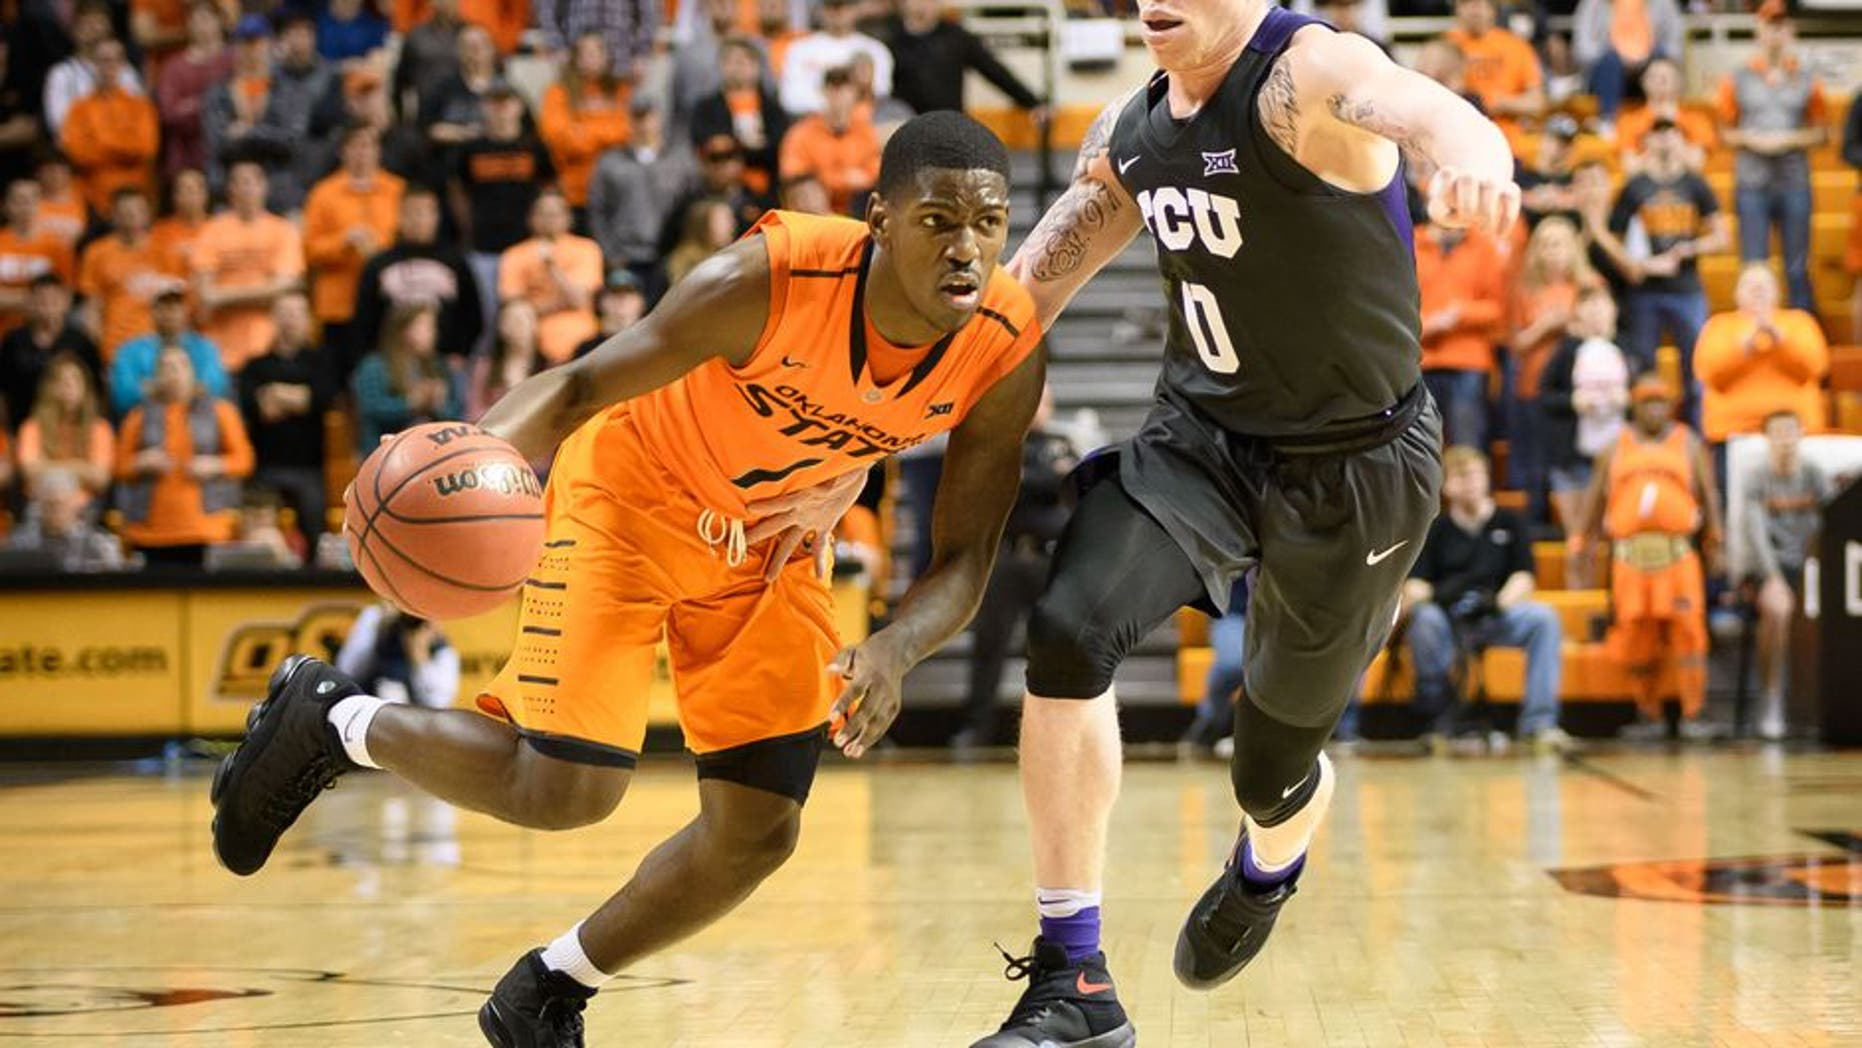 Jan 23, 2017; Stillwater, OK, USA; Oklahoma State Cowboys guard Jawun Evans (1) drives to the basket defended by TCU Horned Frogs guard Jaylen Fisher (0) during the second half at Gallagher-Iba Arena. Cowboys won 89-76. Mandatory Credit: Rob Ferguson-USA TODAY Sports